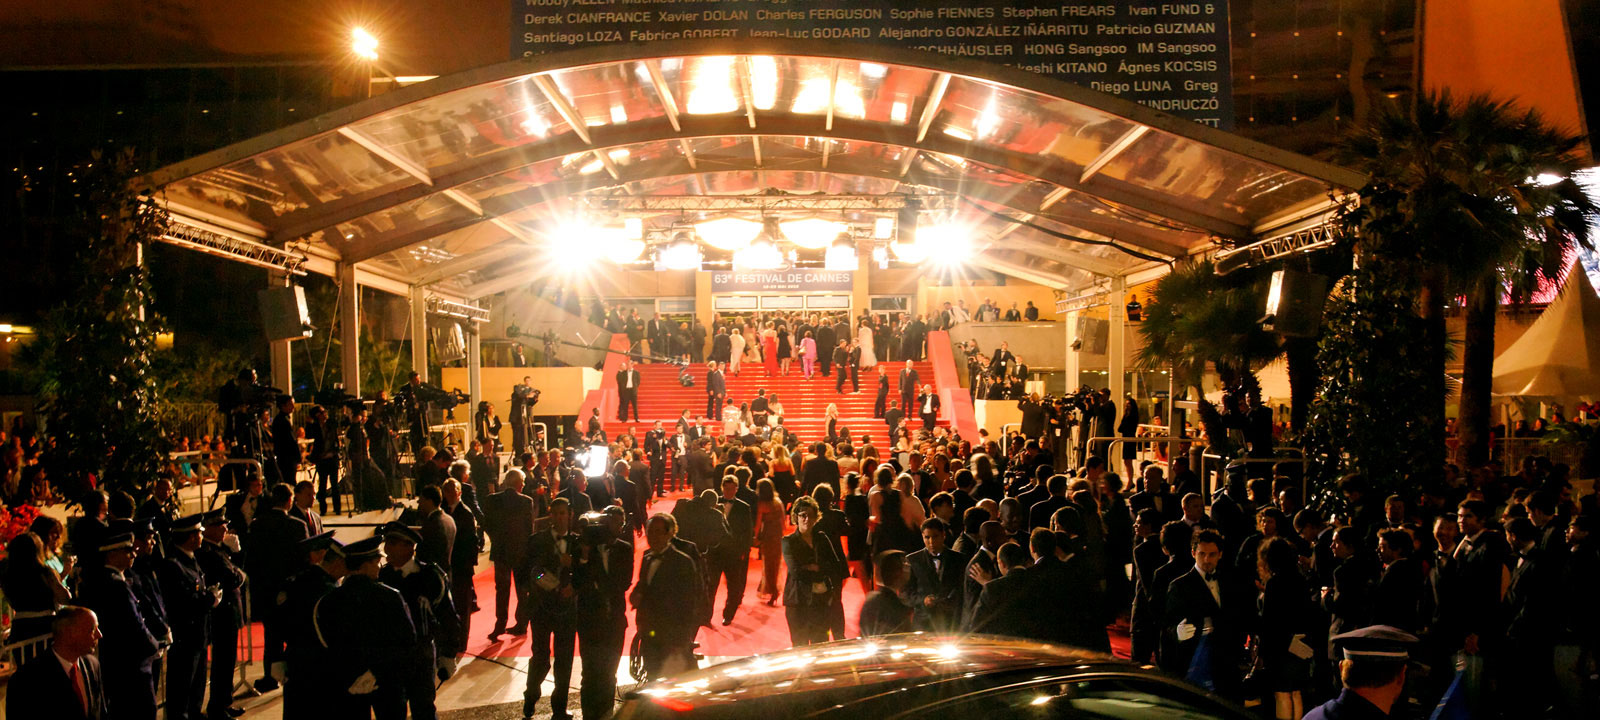 La montée des marches au Palais des Festivals de Cannes pendant le Festival du Film